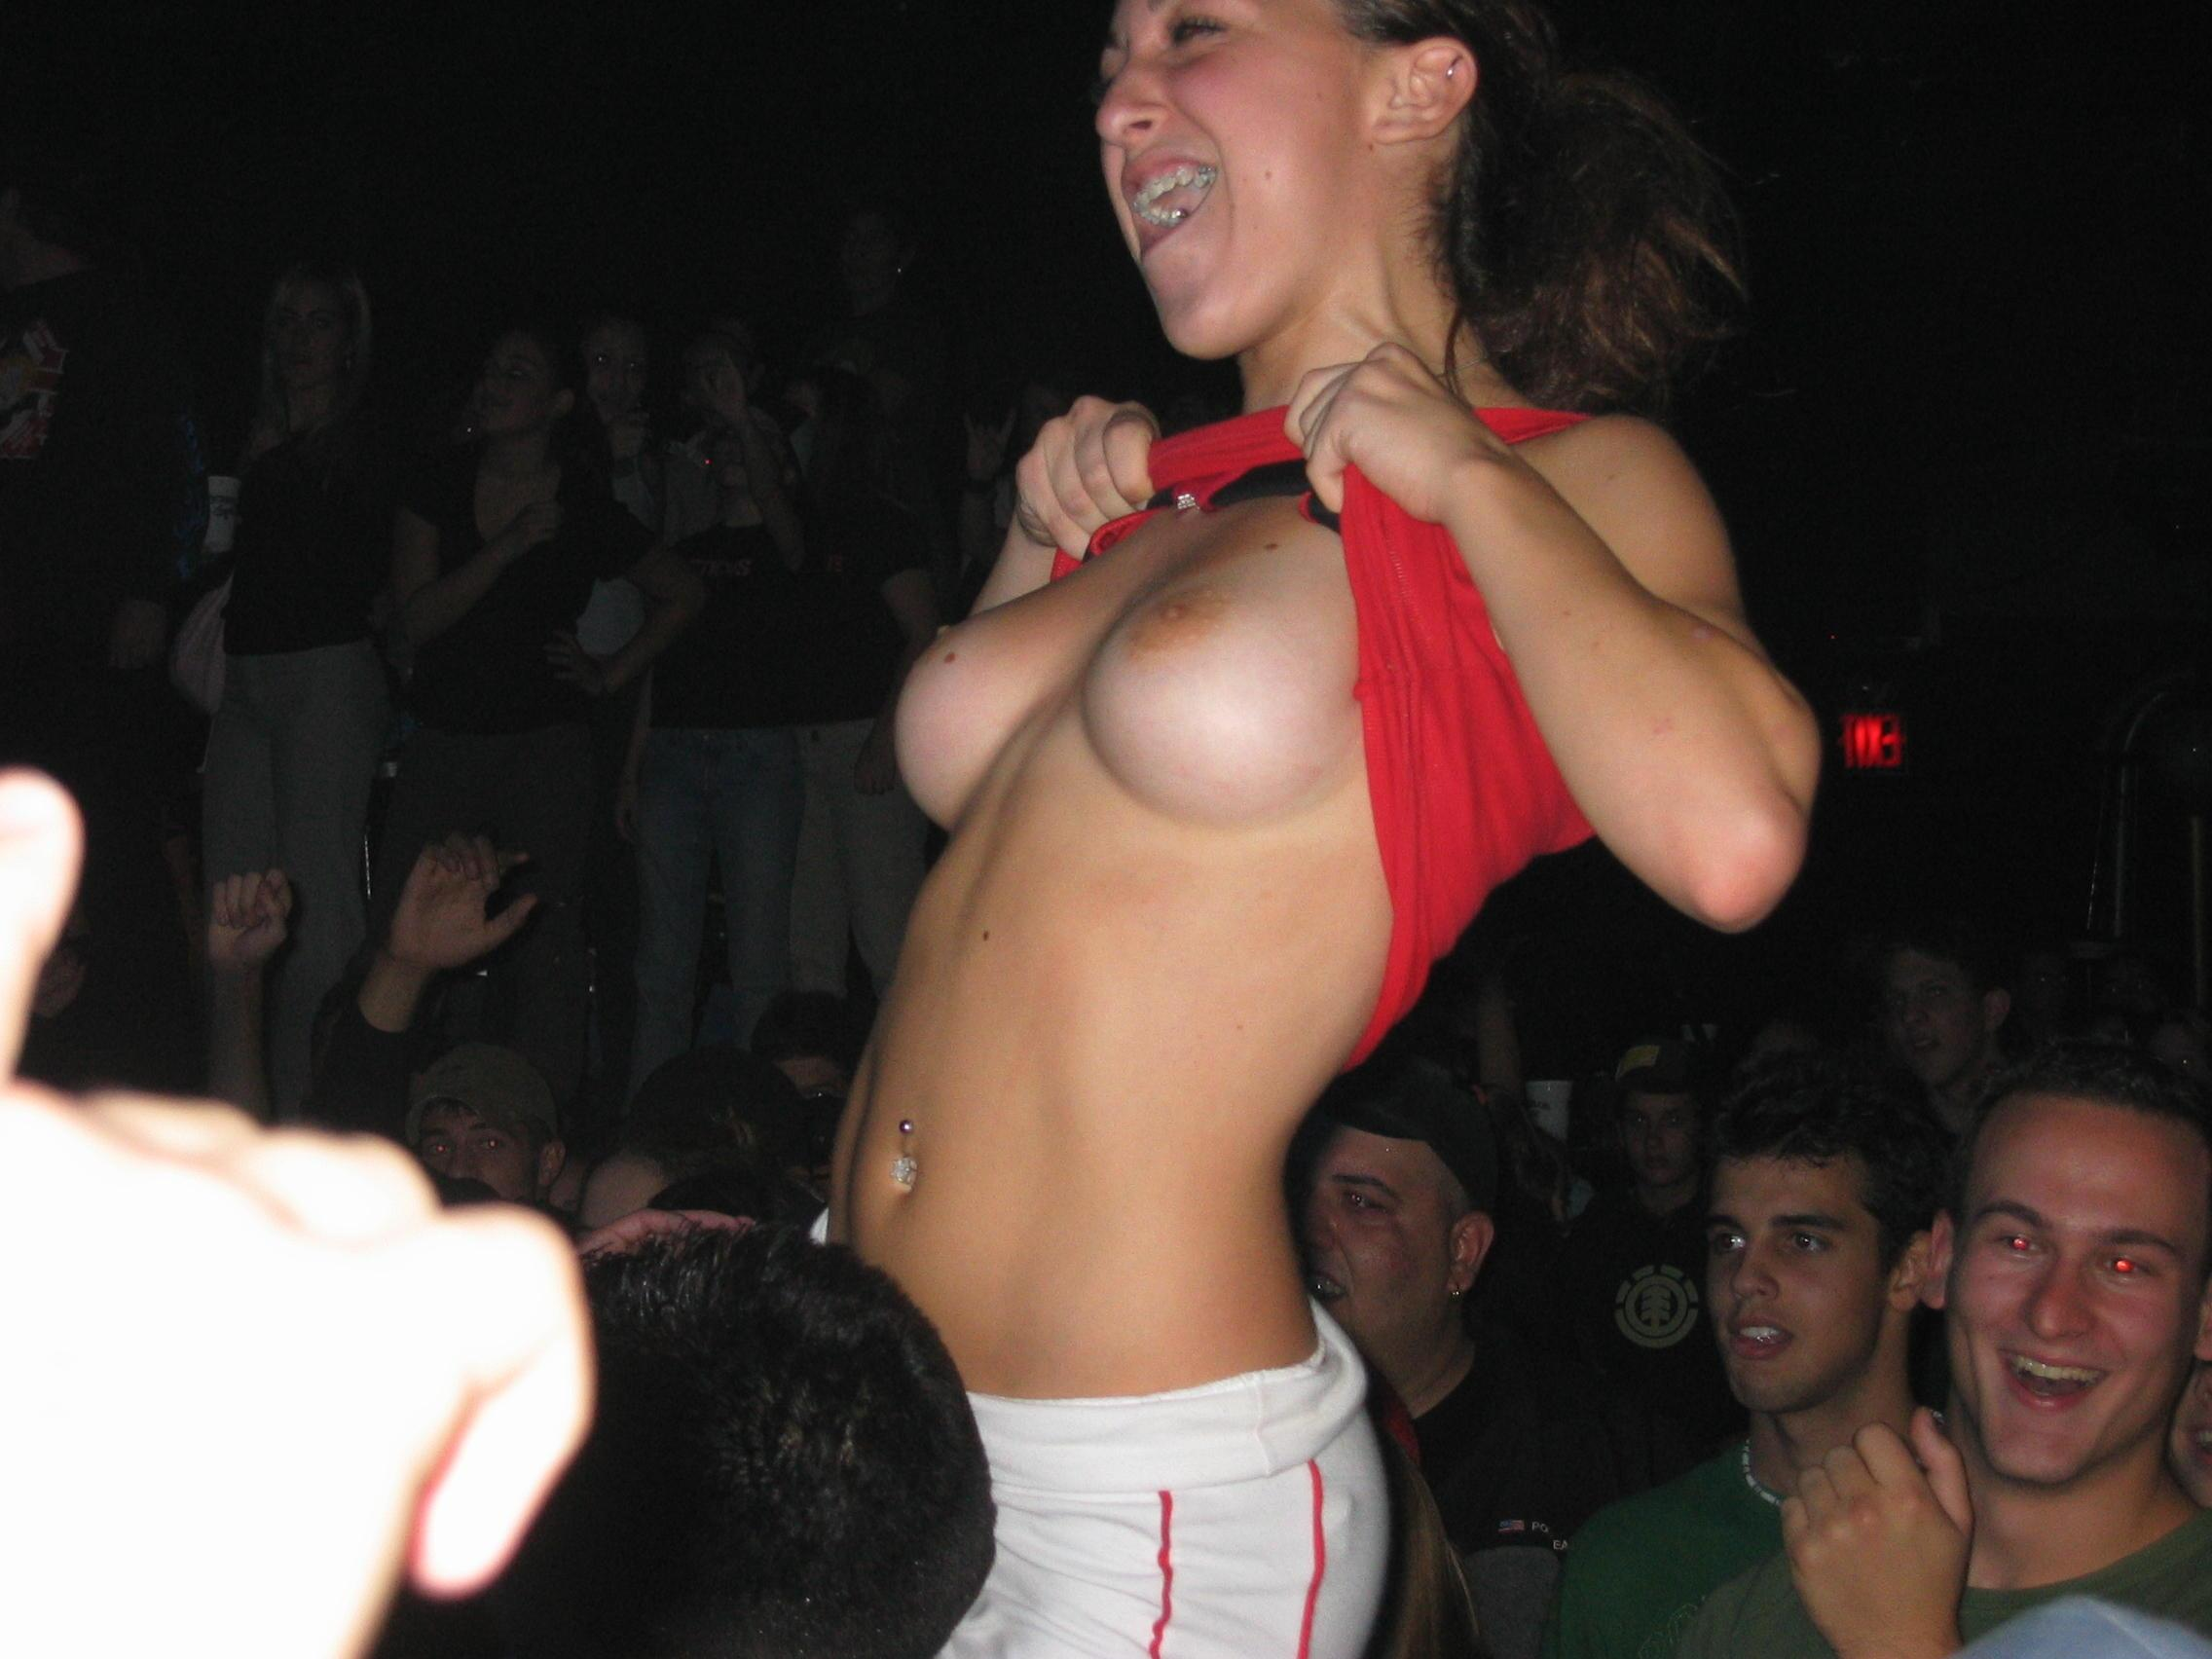 Girls flash at concert